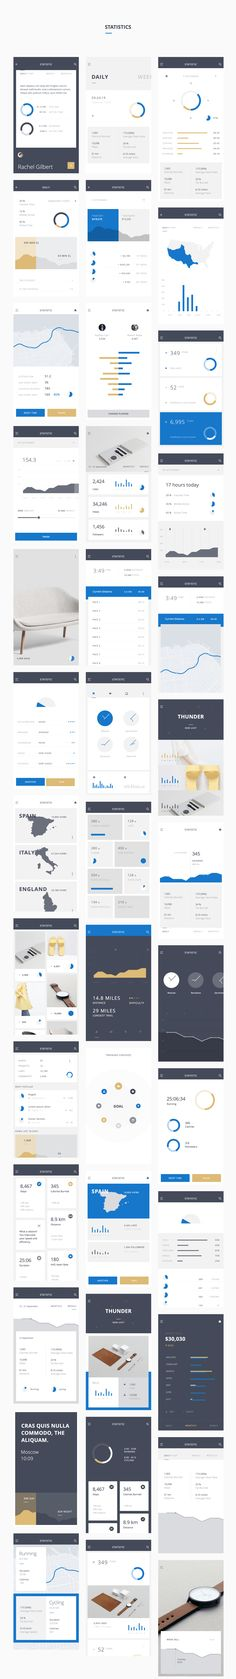 Thunder UI Kit is the successor of our all time best selling Bolt UI Kit. As you come to expect, you get a highly polished, consistent, organized and retina-ready set of premium components to build your next mobile app. Web Design Trends, Graphisches Design, Web Ui Design, Dashboard Design, Flat Design, Ui Kit, Software, Mobile Web Design, Apps